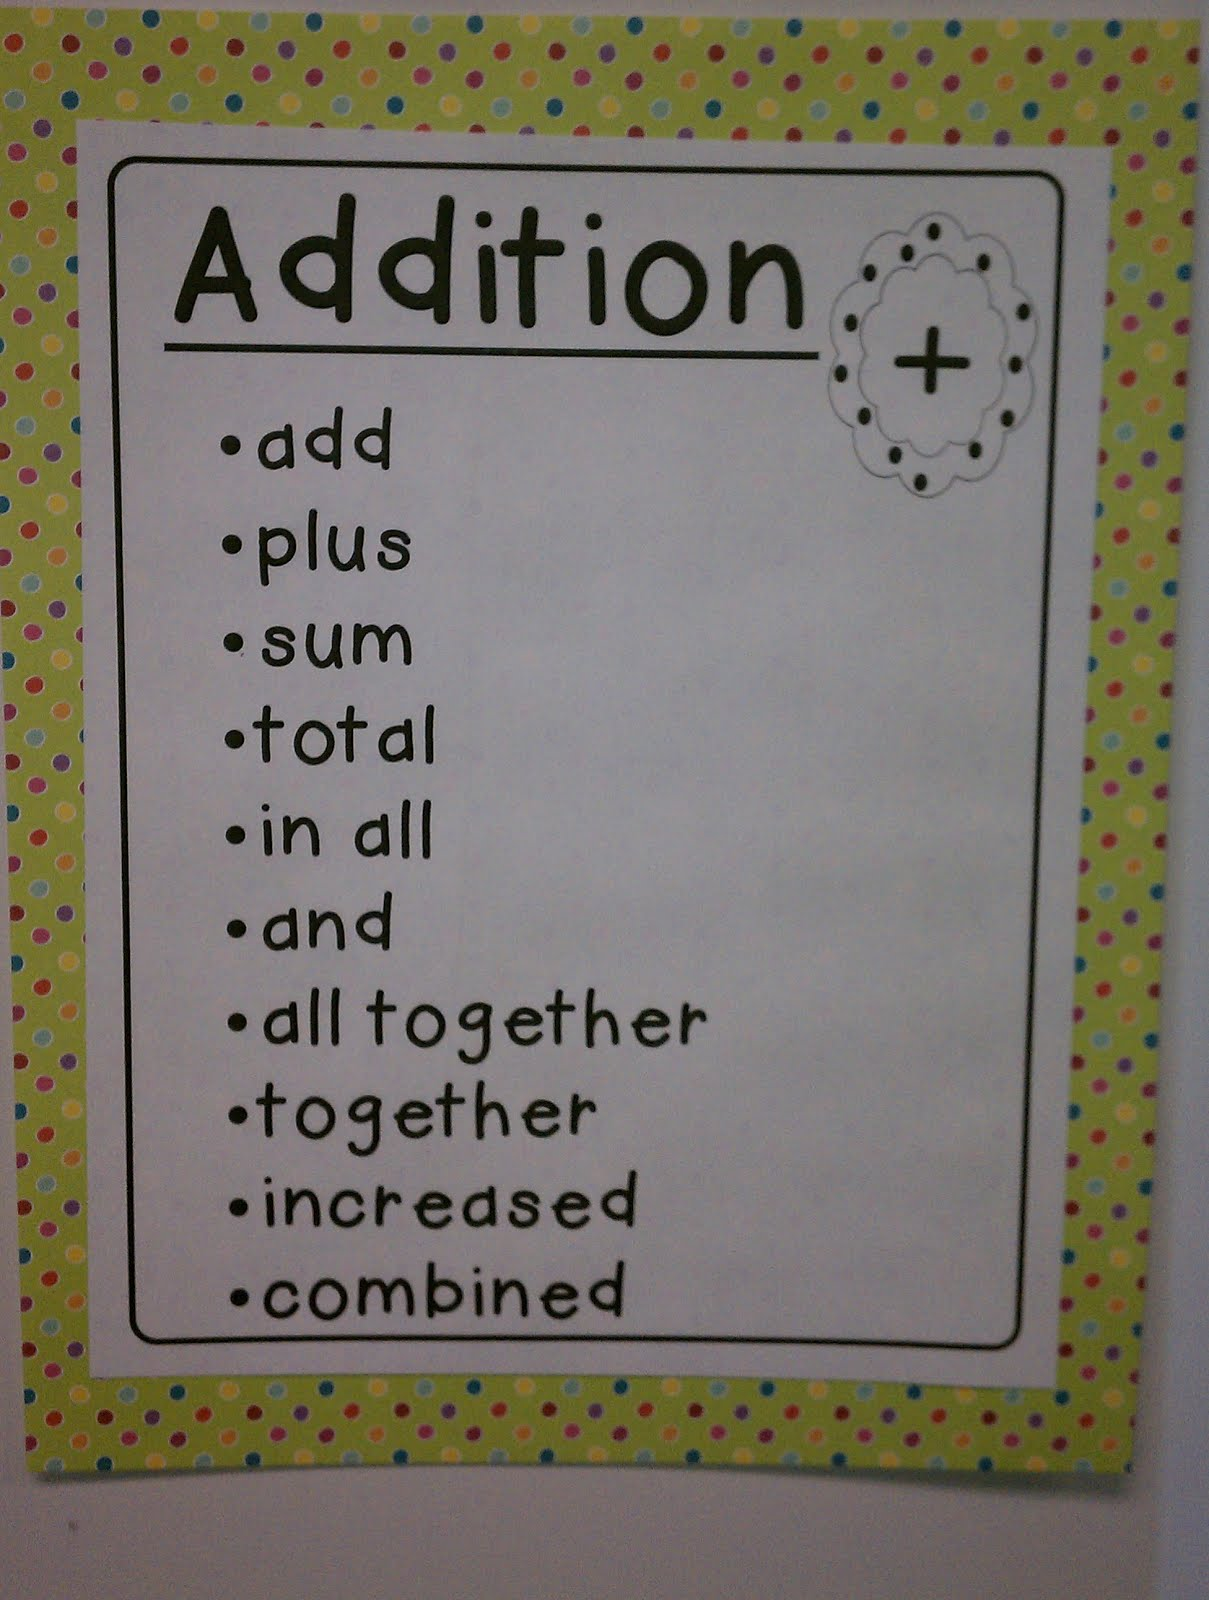 Keywords For Addition And Subtraction - Athlone Literary Festival